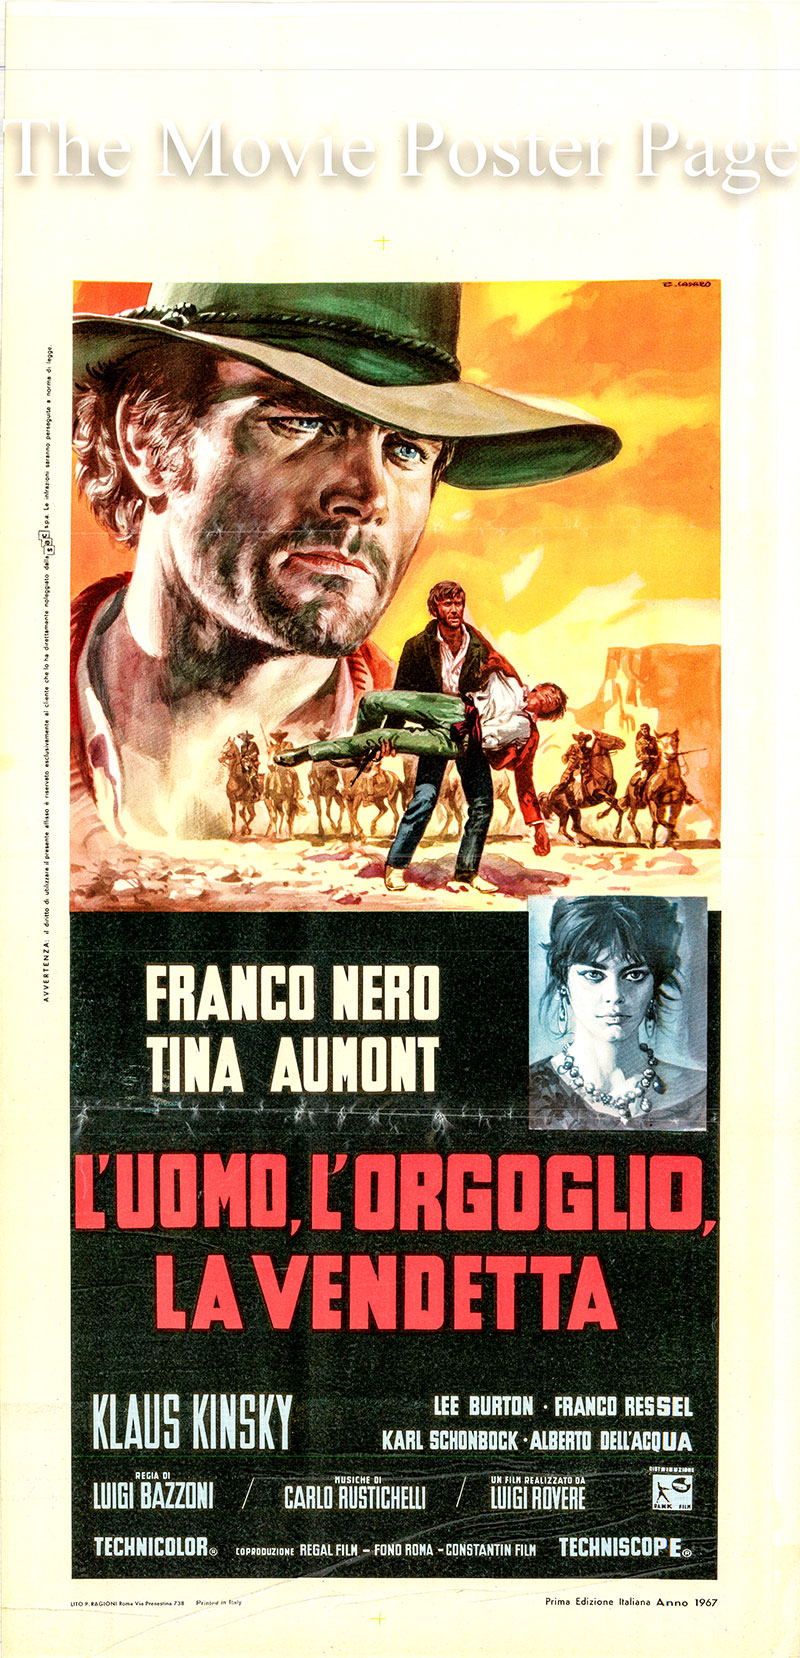 Pictured is an Italian locandina promotional poster for the 1967 Luigi Bazzoni film Pride and Vengeance, starring Franco Nero and Klaus Kinski